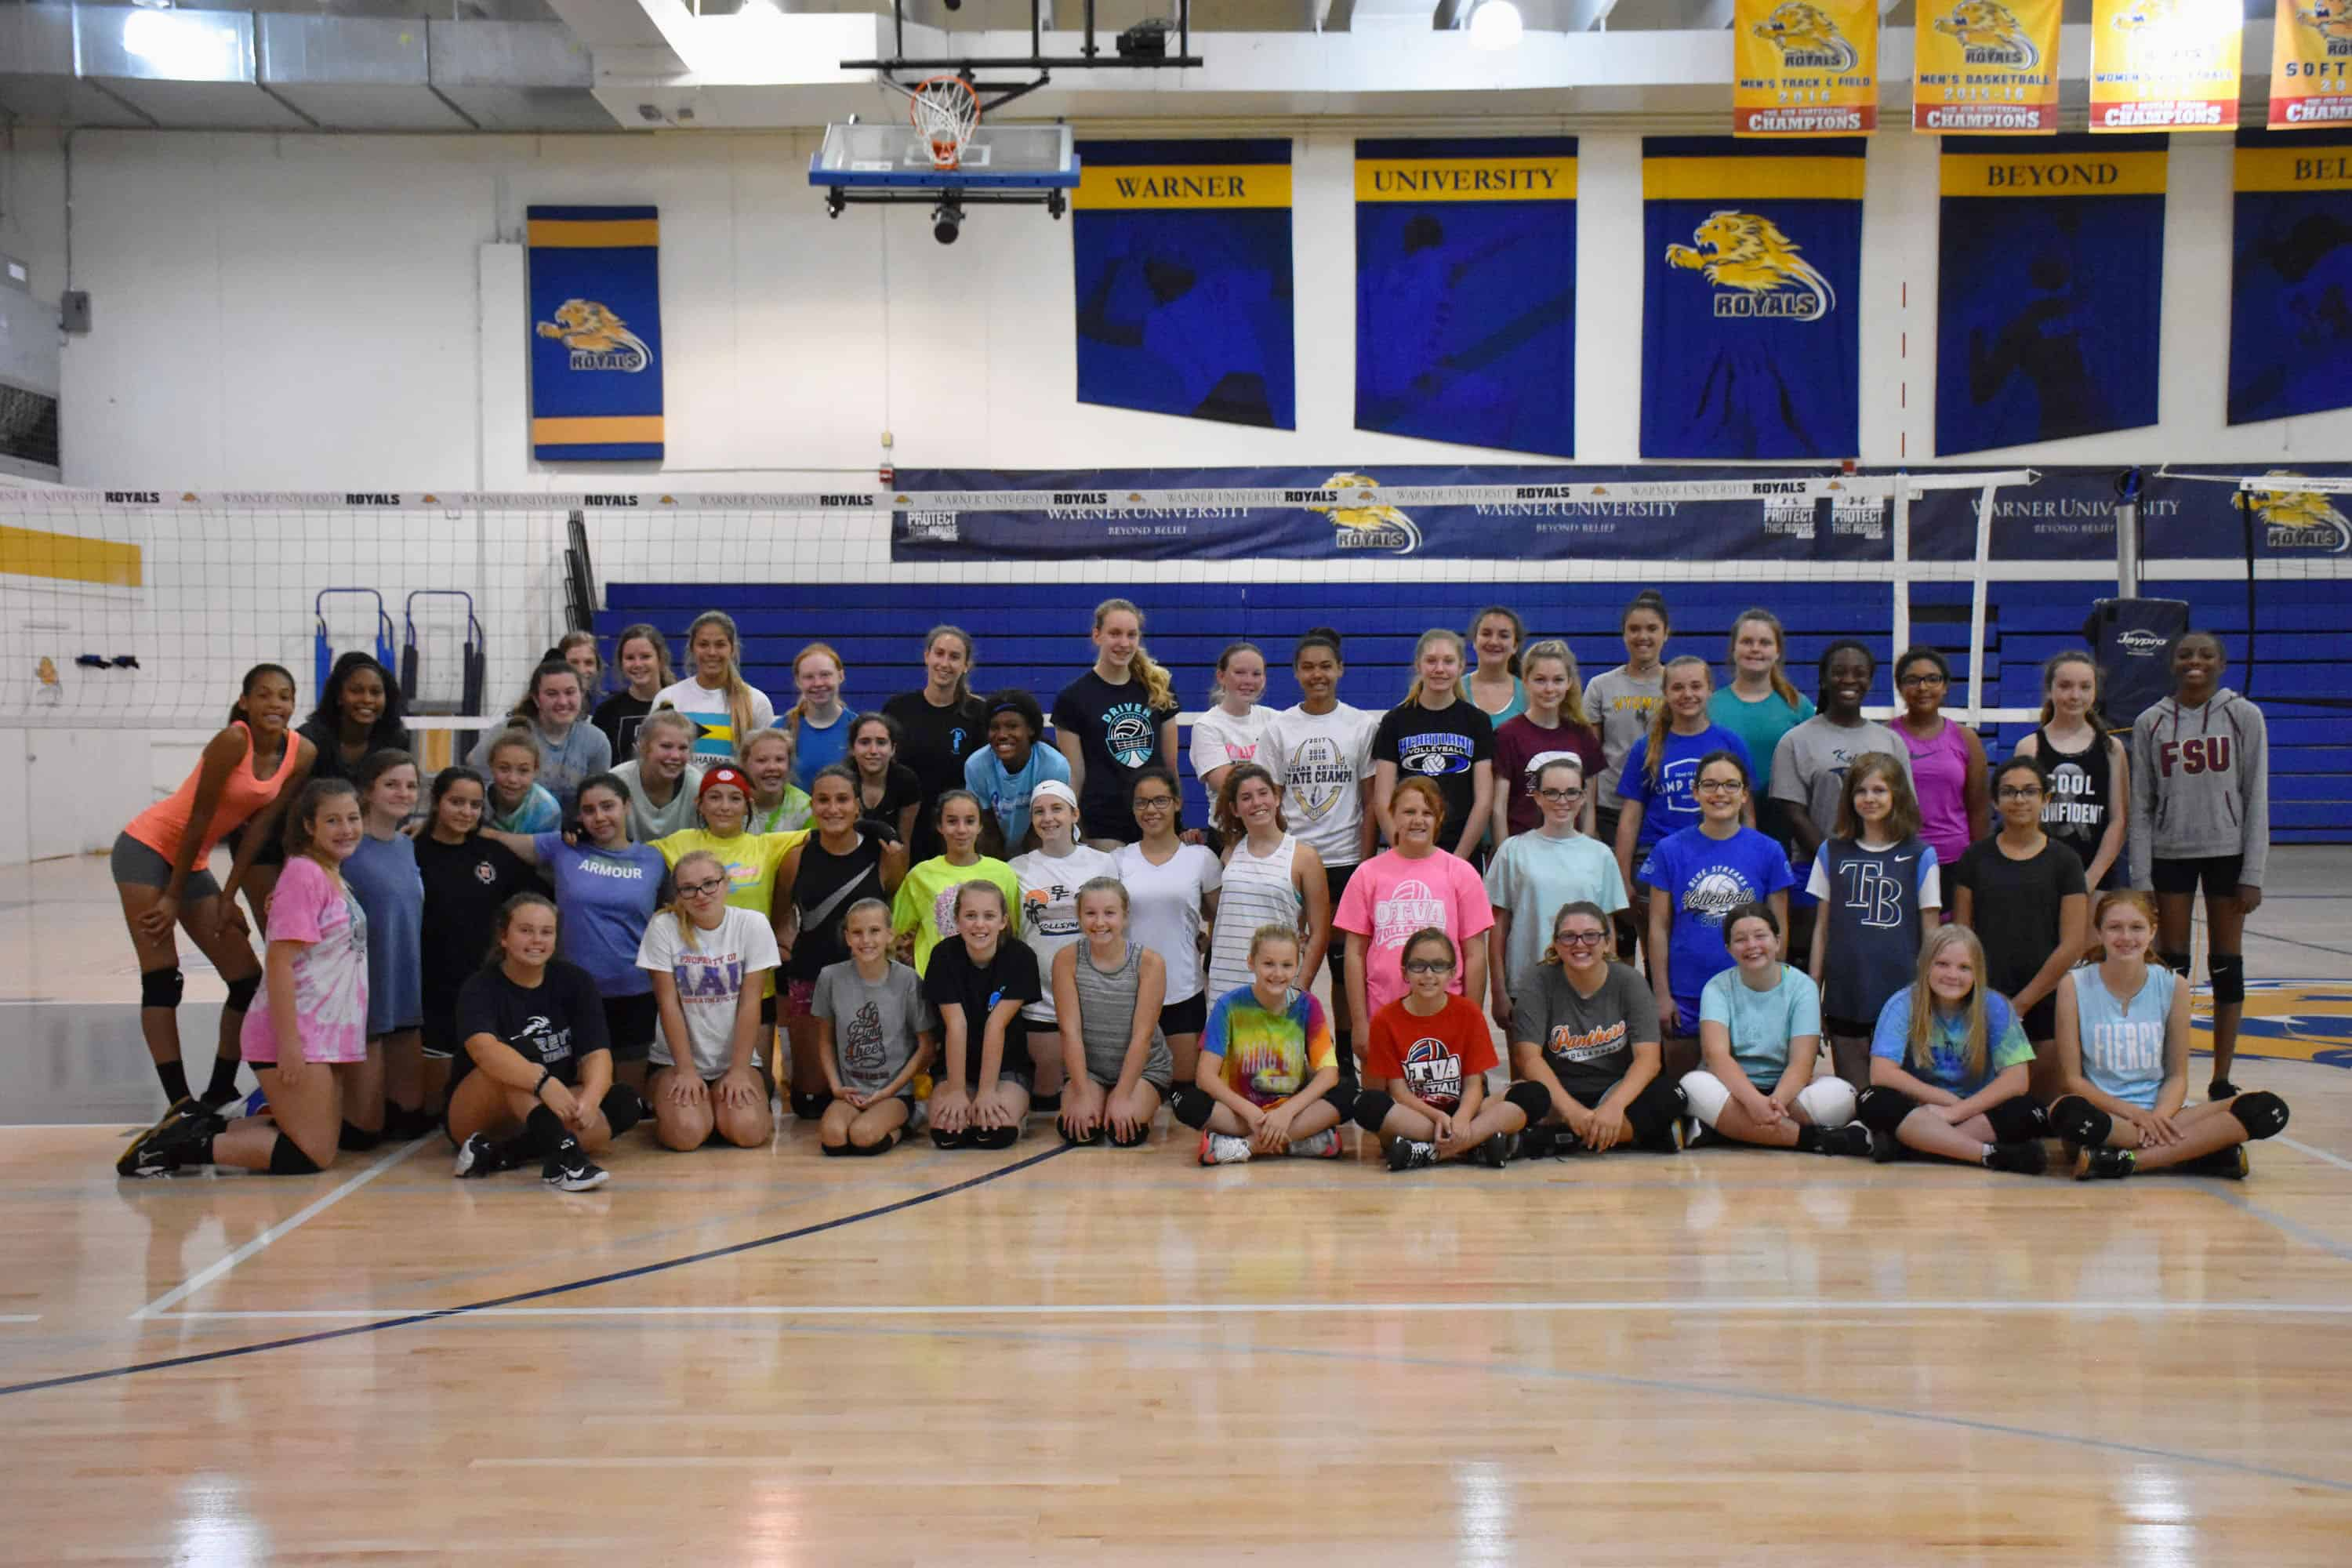 Warner Hosts Nike Volleyball Camp